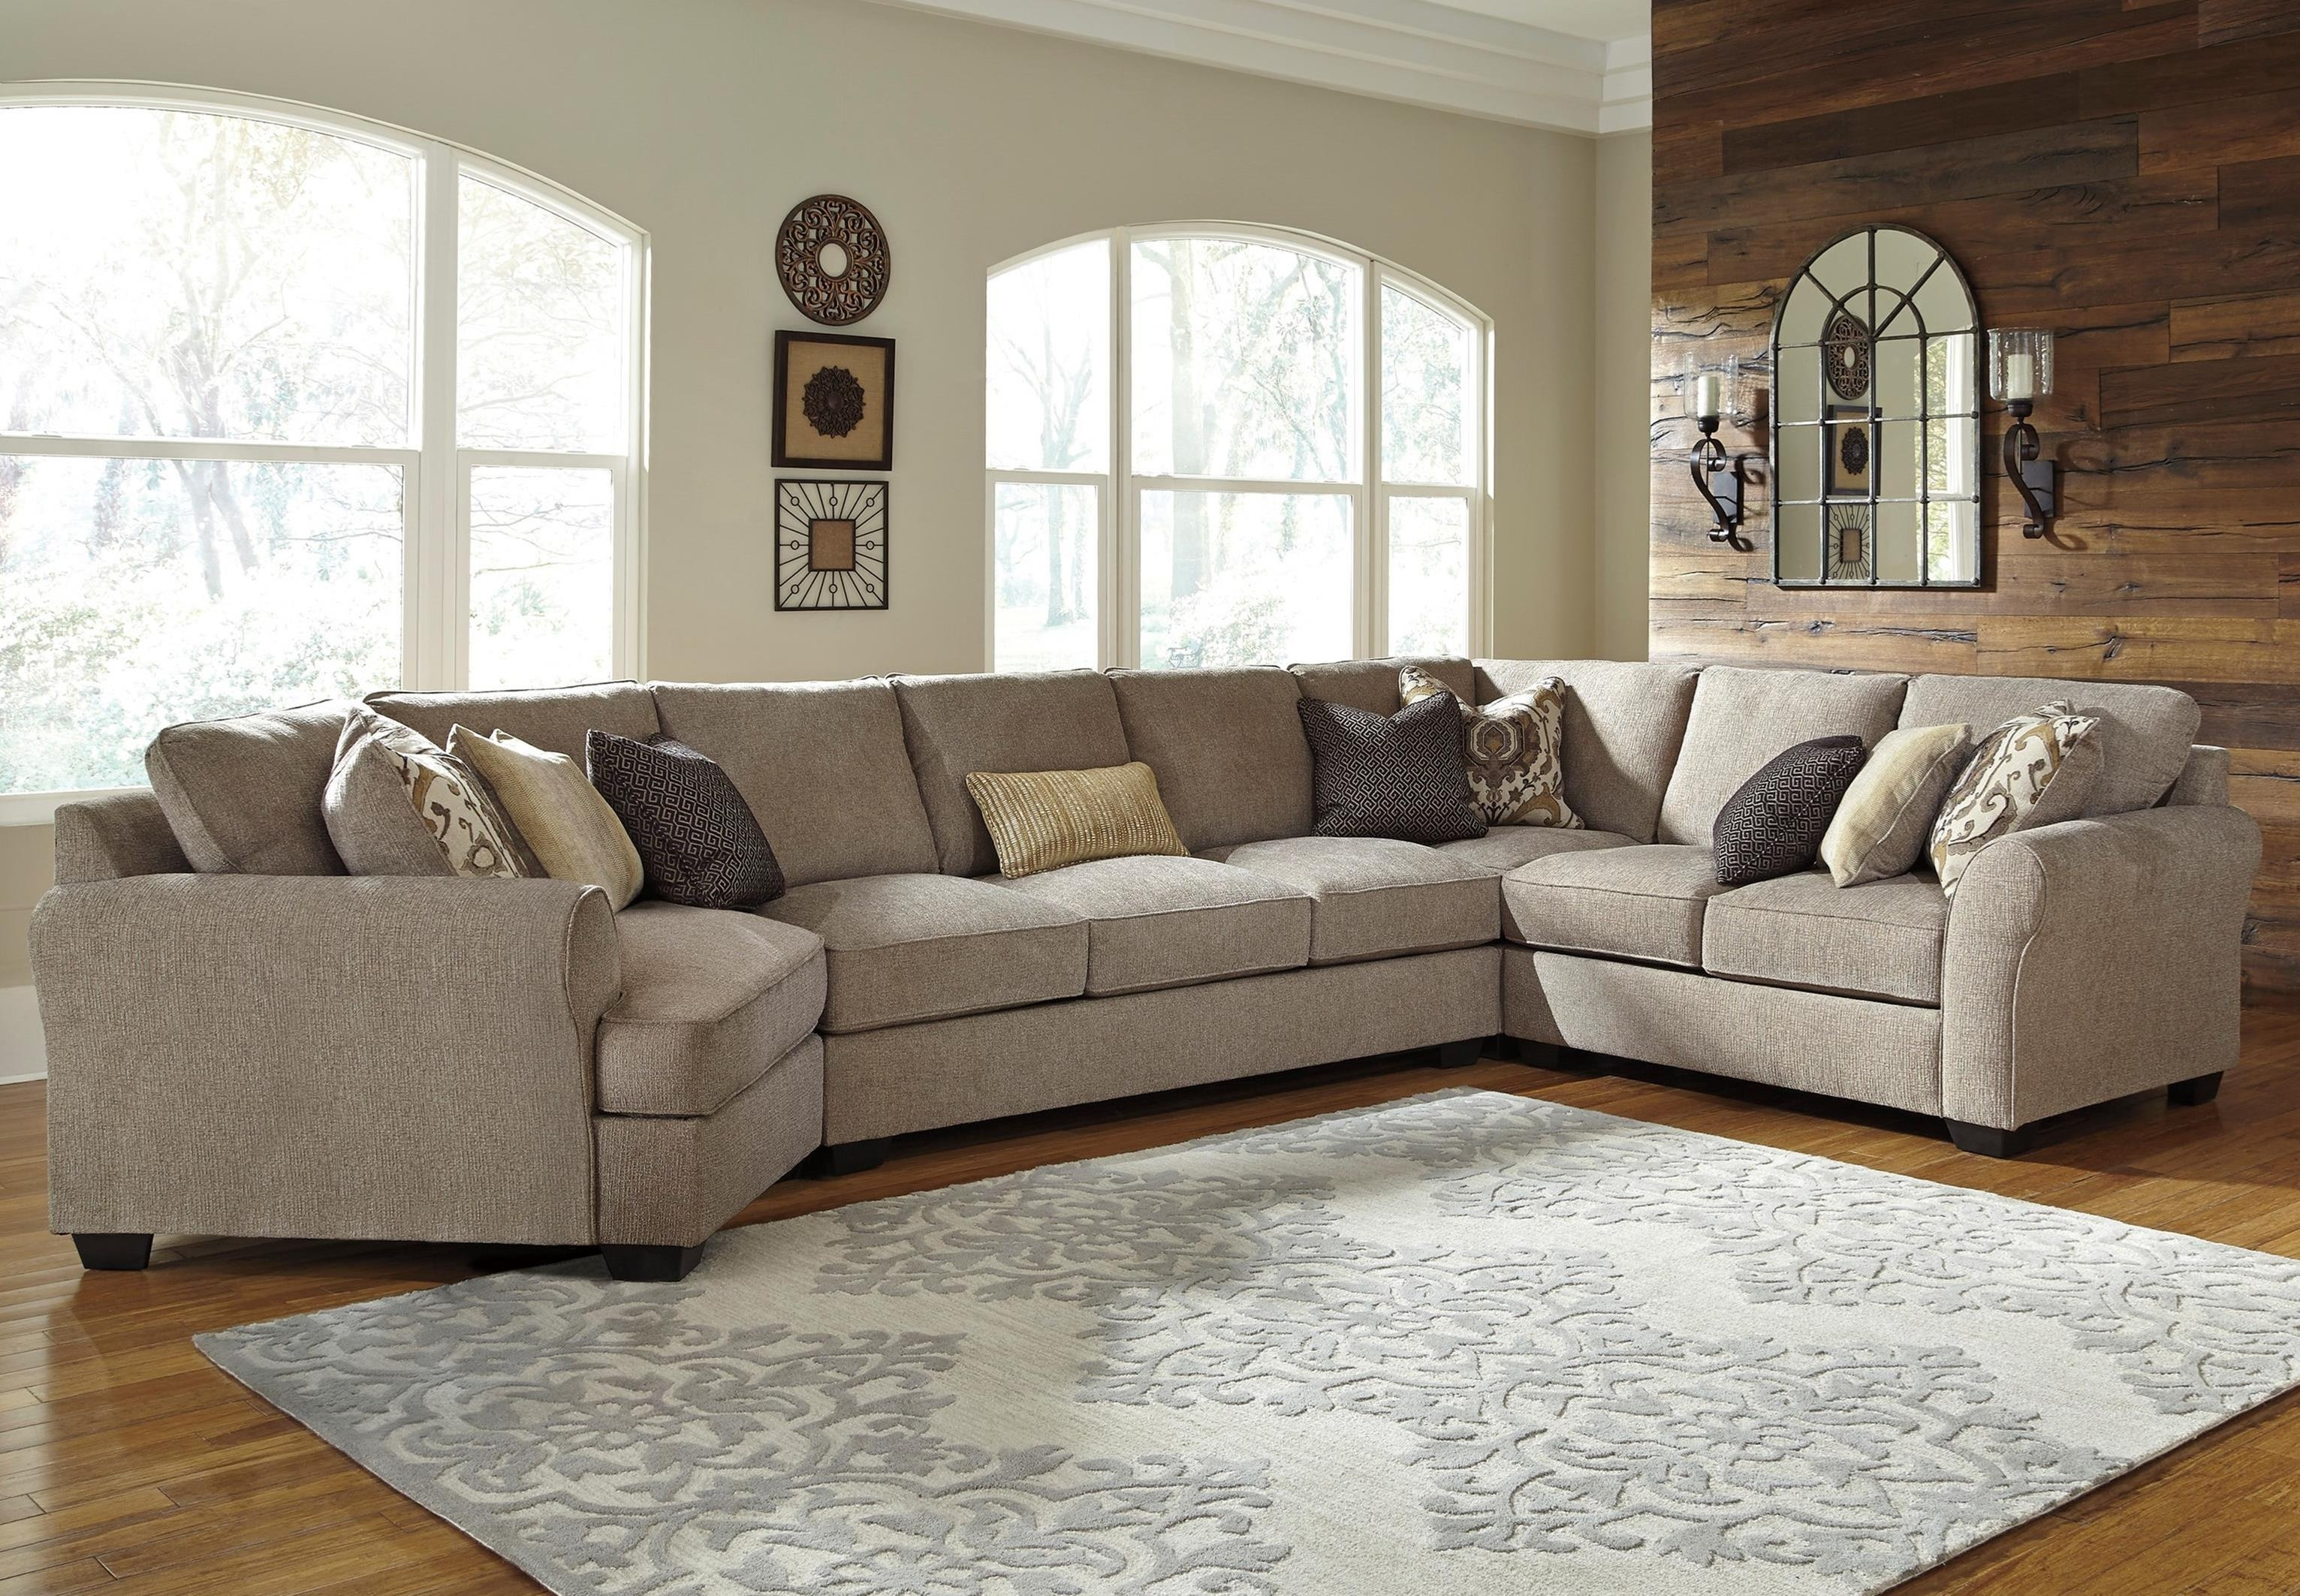 Benchcraft Pantomine 4 Piece Sectional With Left Cuddler & Armless With Cuddler Sectional Sofa (Image 1 of 15)